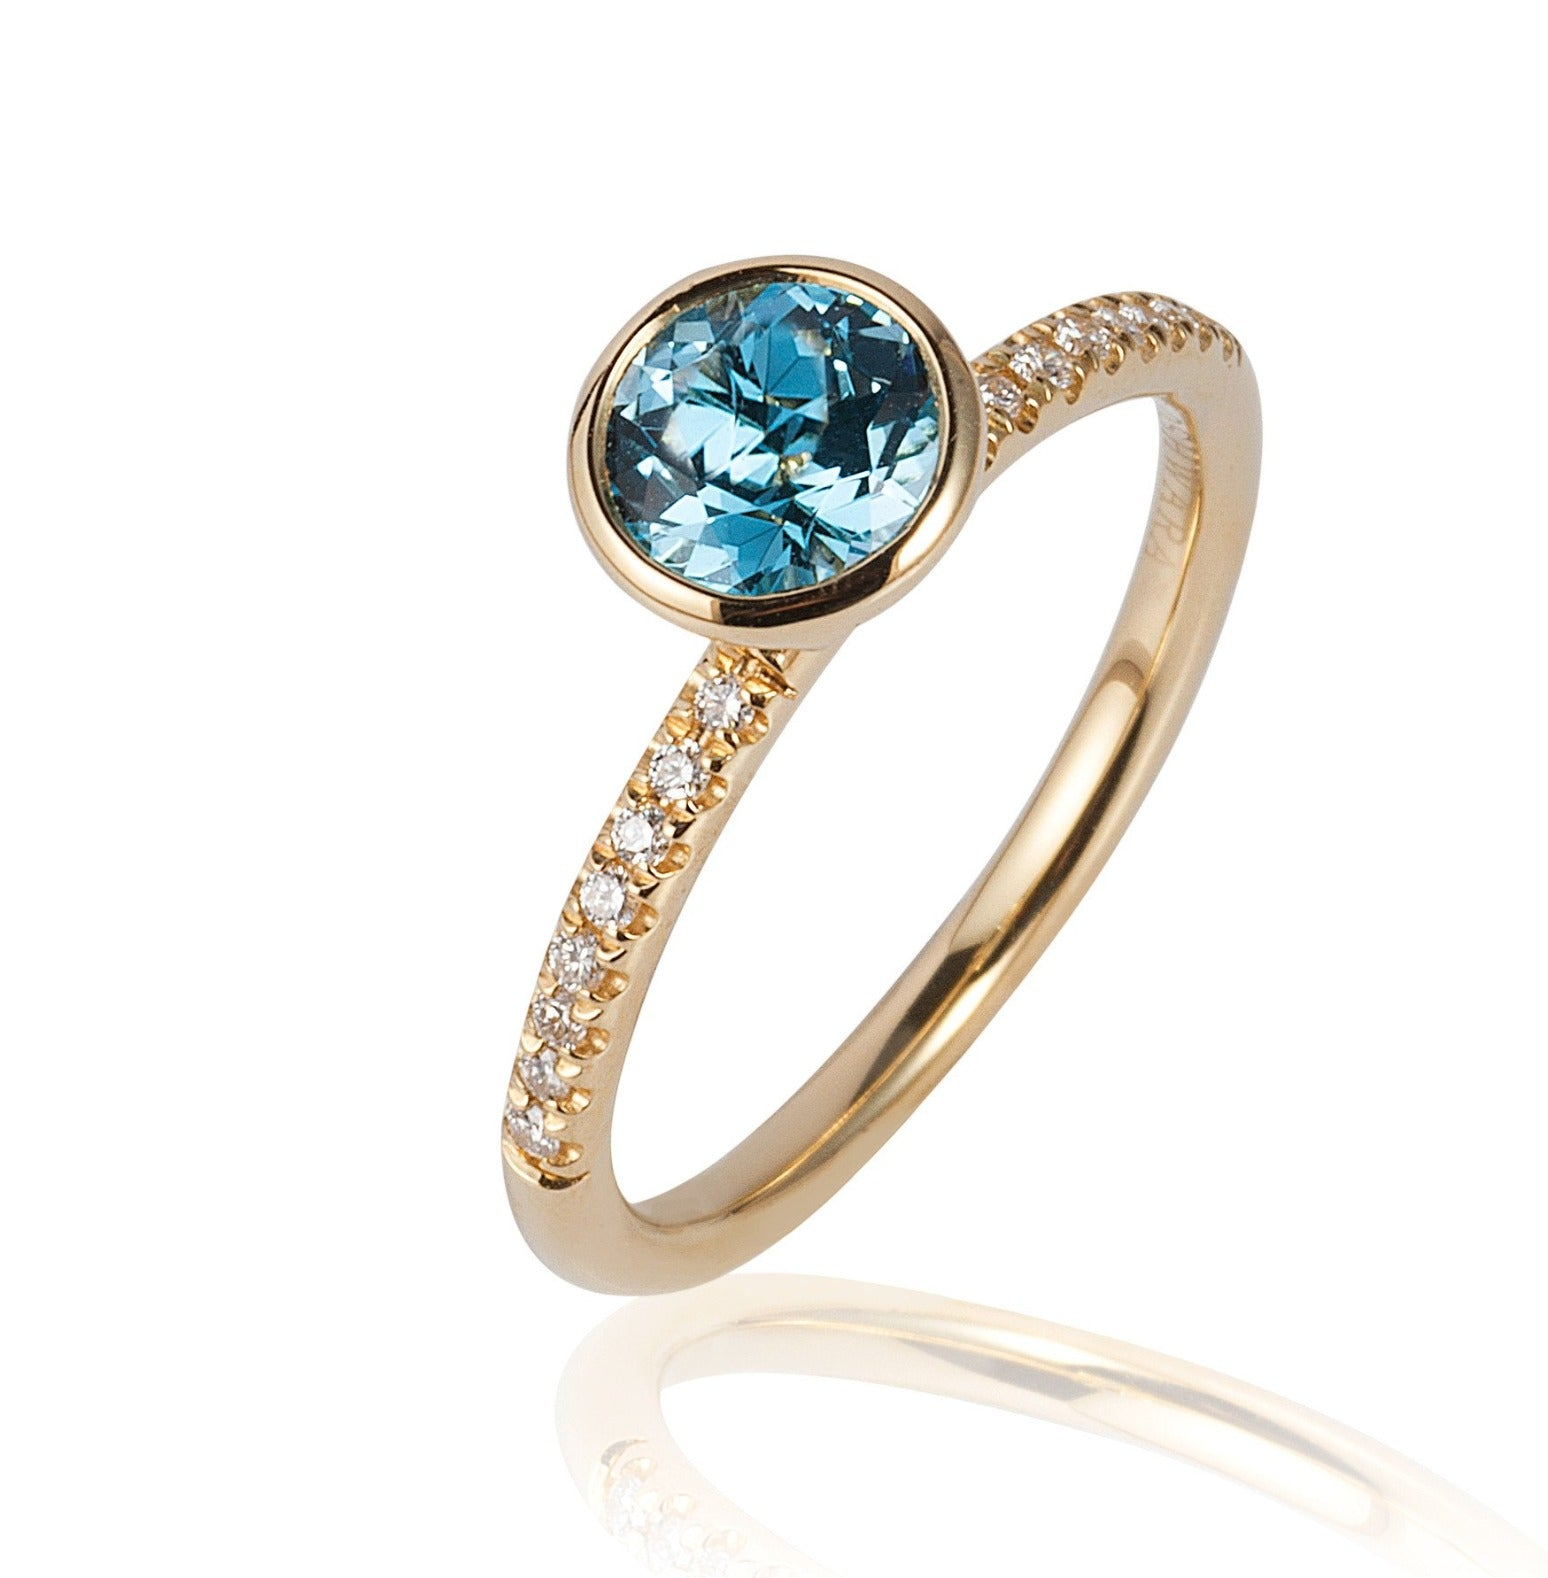 Goshwara Blue Topaz and Diamond Ring